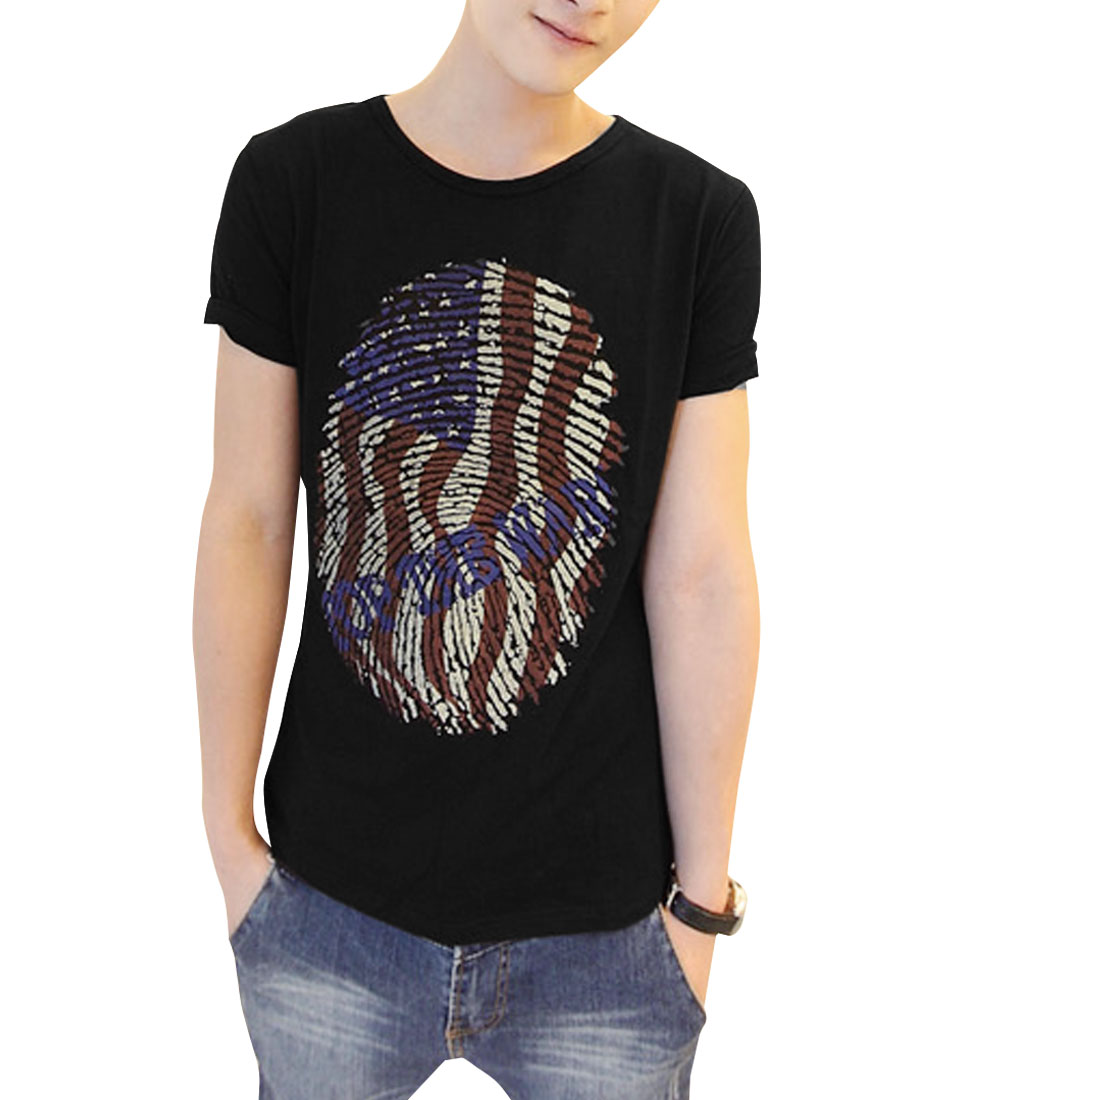 Men Round Neck Novelty Pattern Short Sleeve Design Graphic T-Shirt Black M